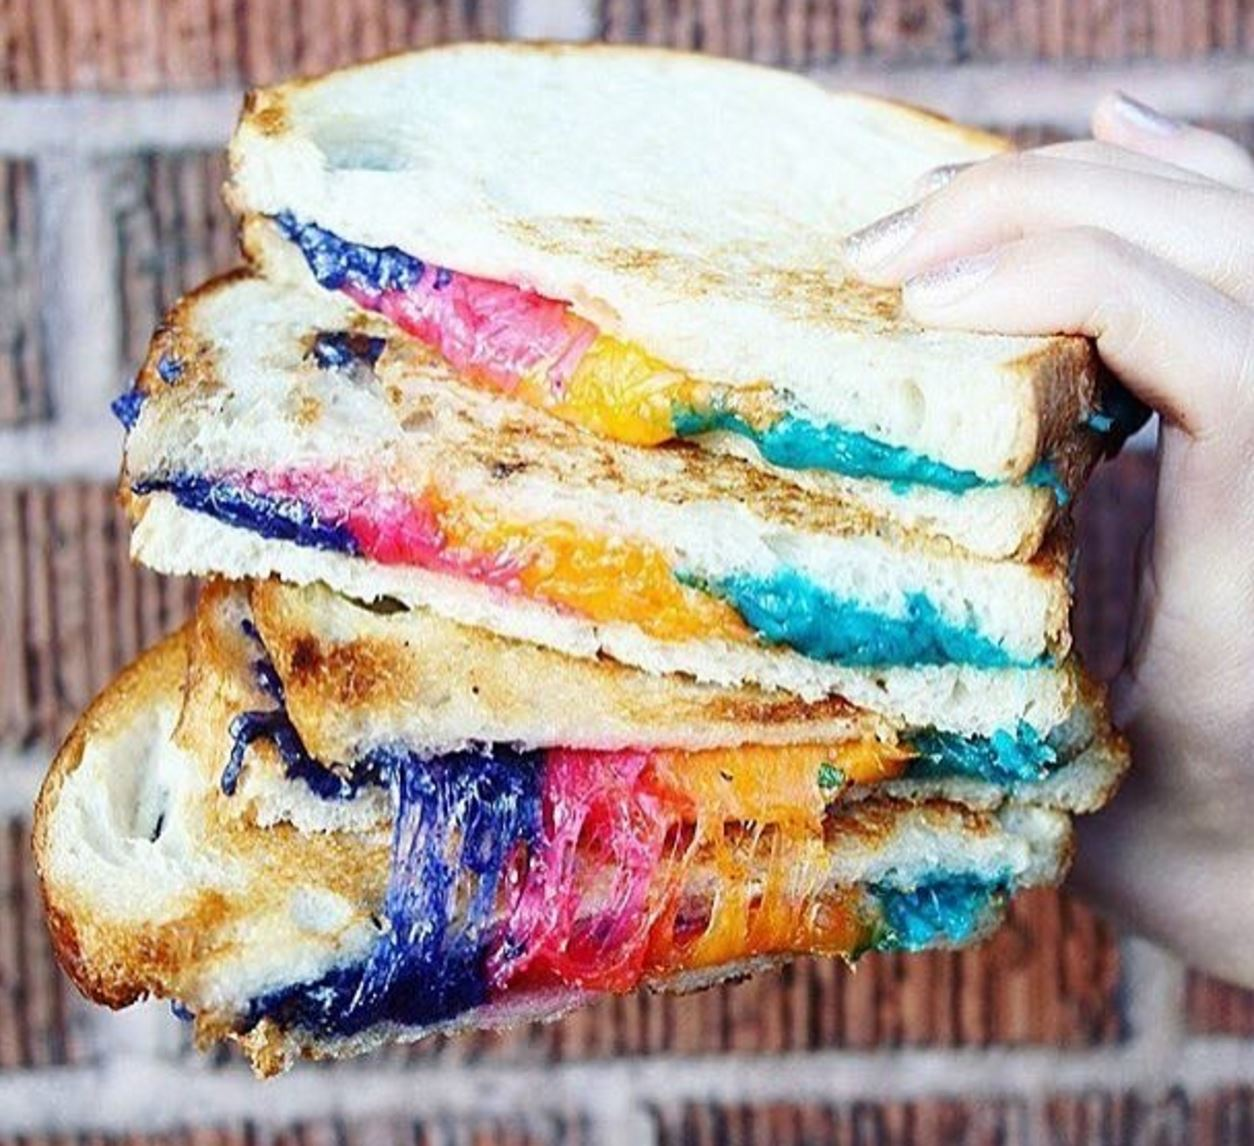 April 12 | Get These Unicorn Melts For Just A Buck @ Chomp Eatery - Santa Monica